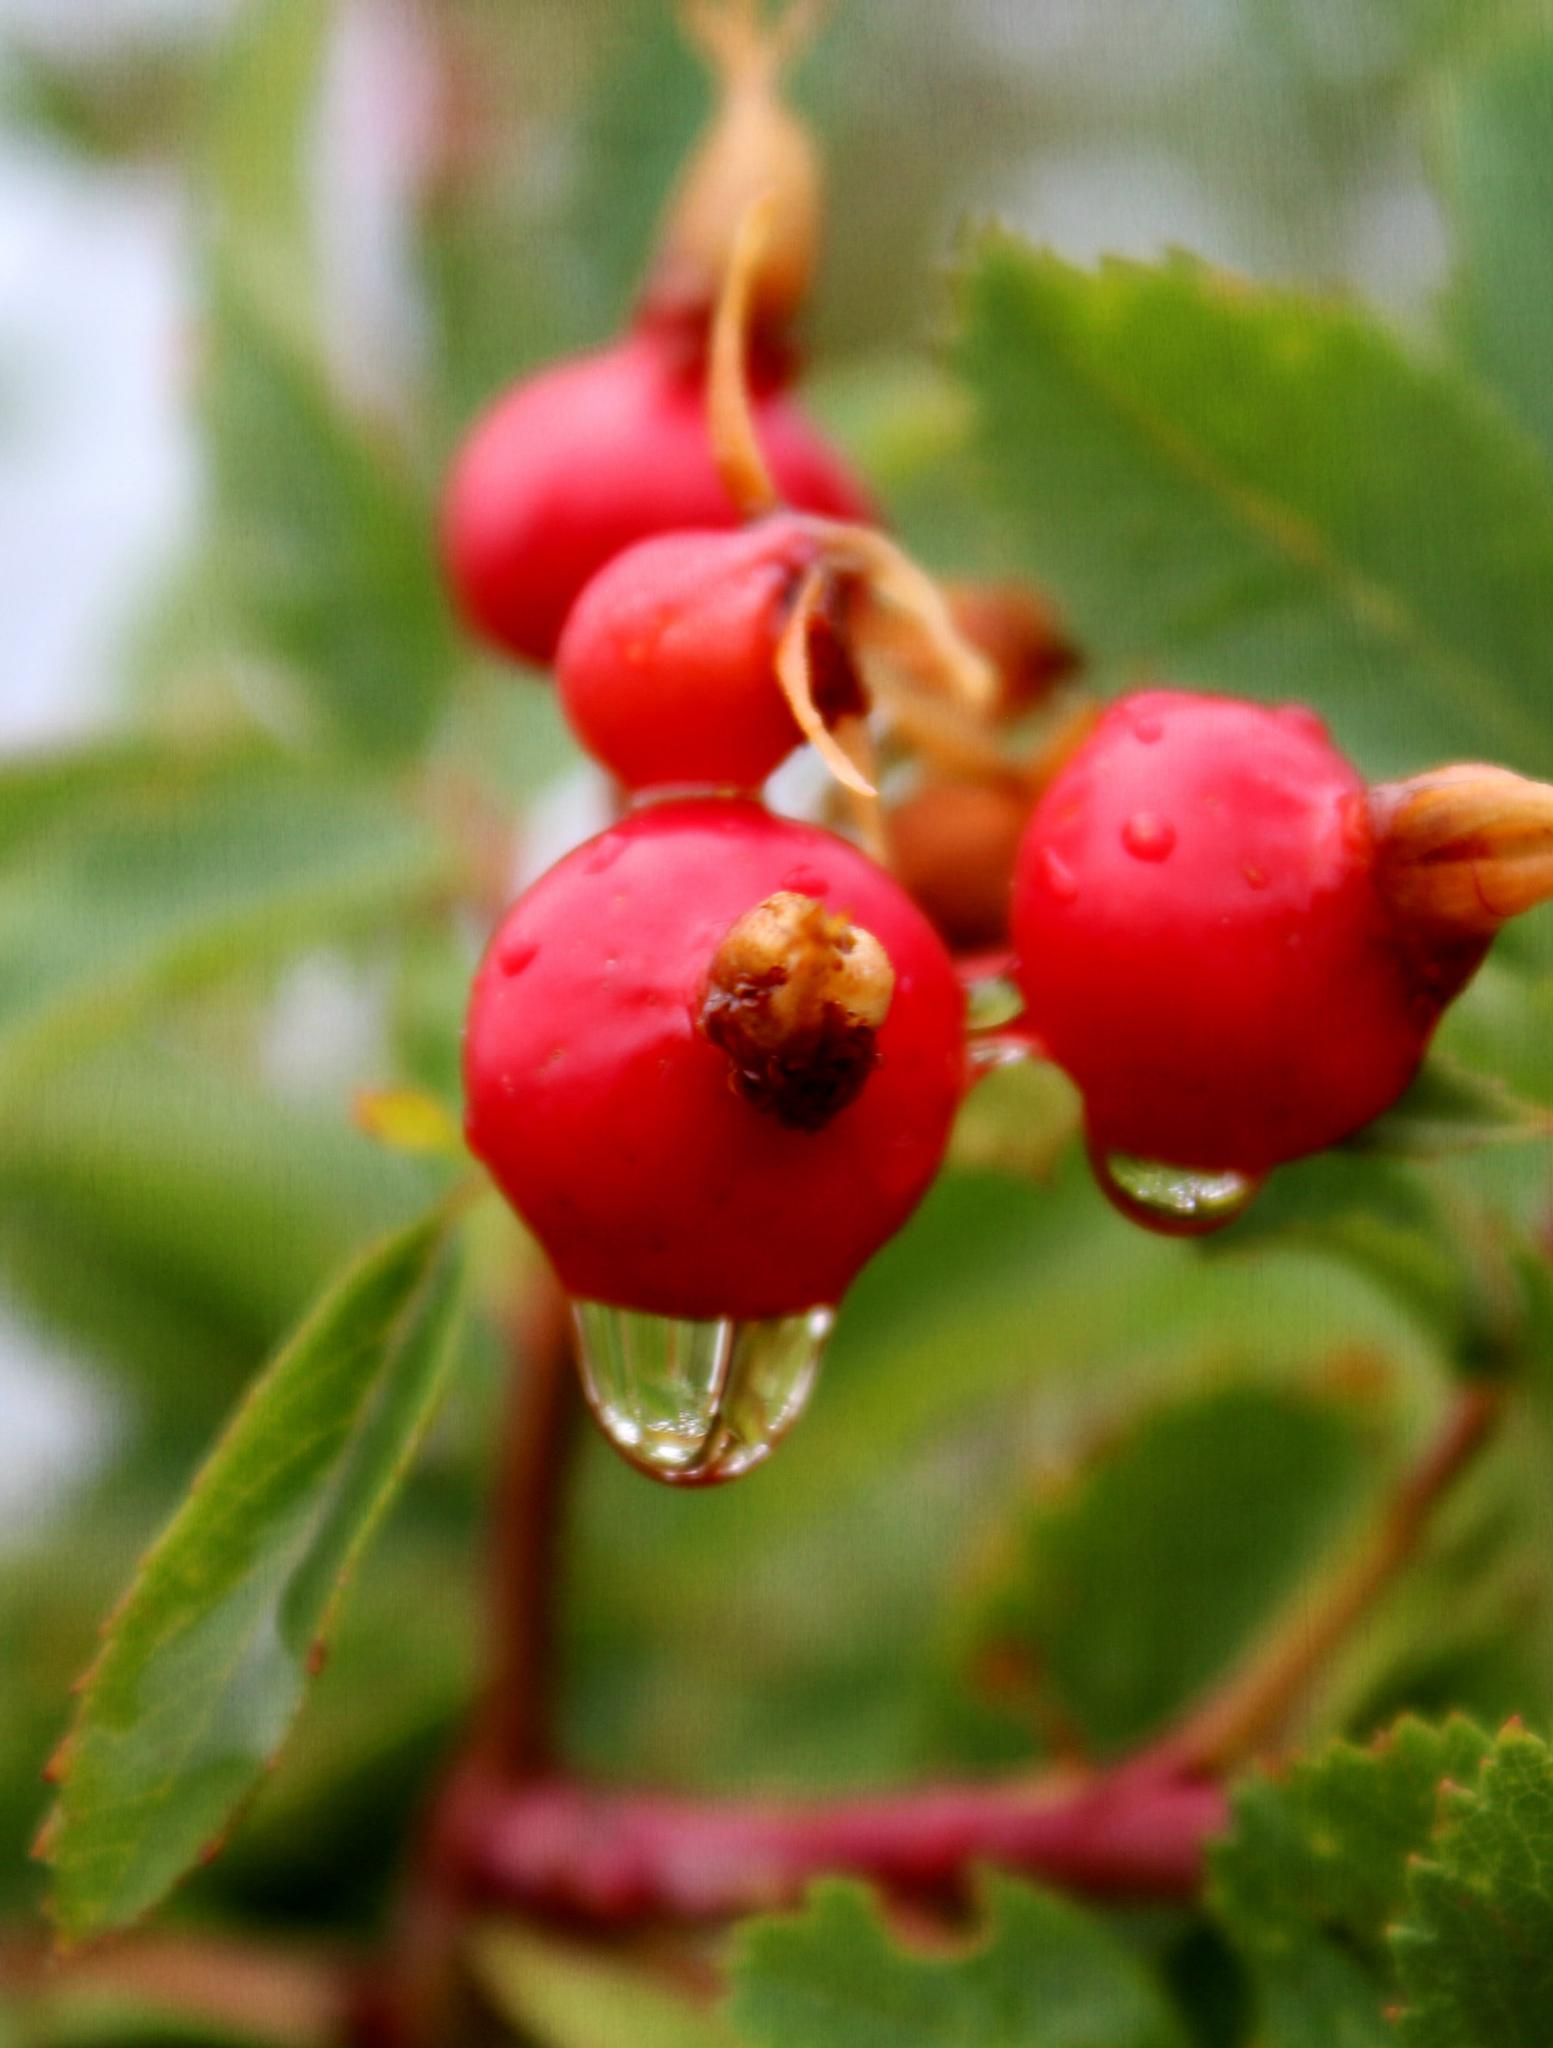 Berry and Raindrops by Lucretia Bittner